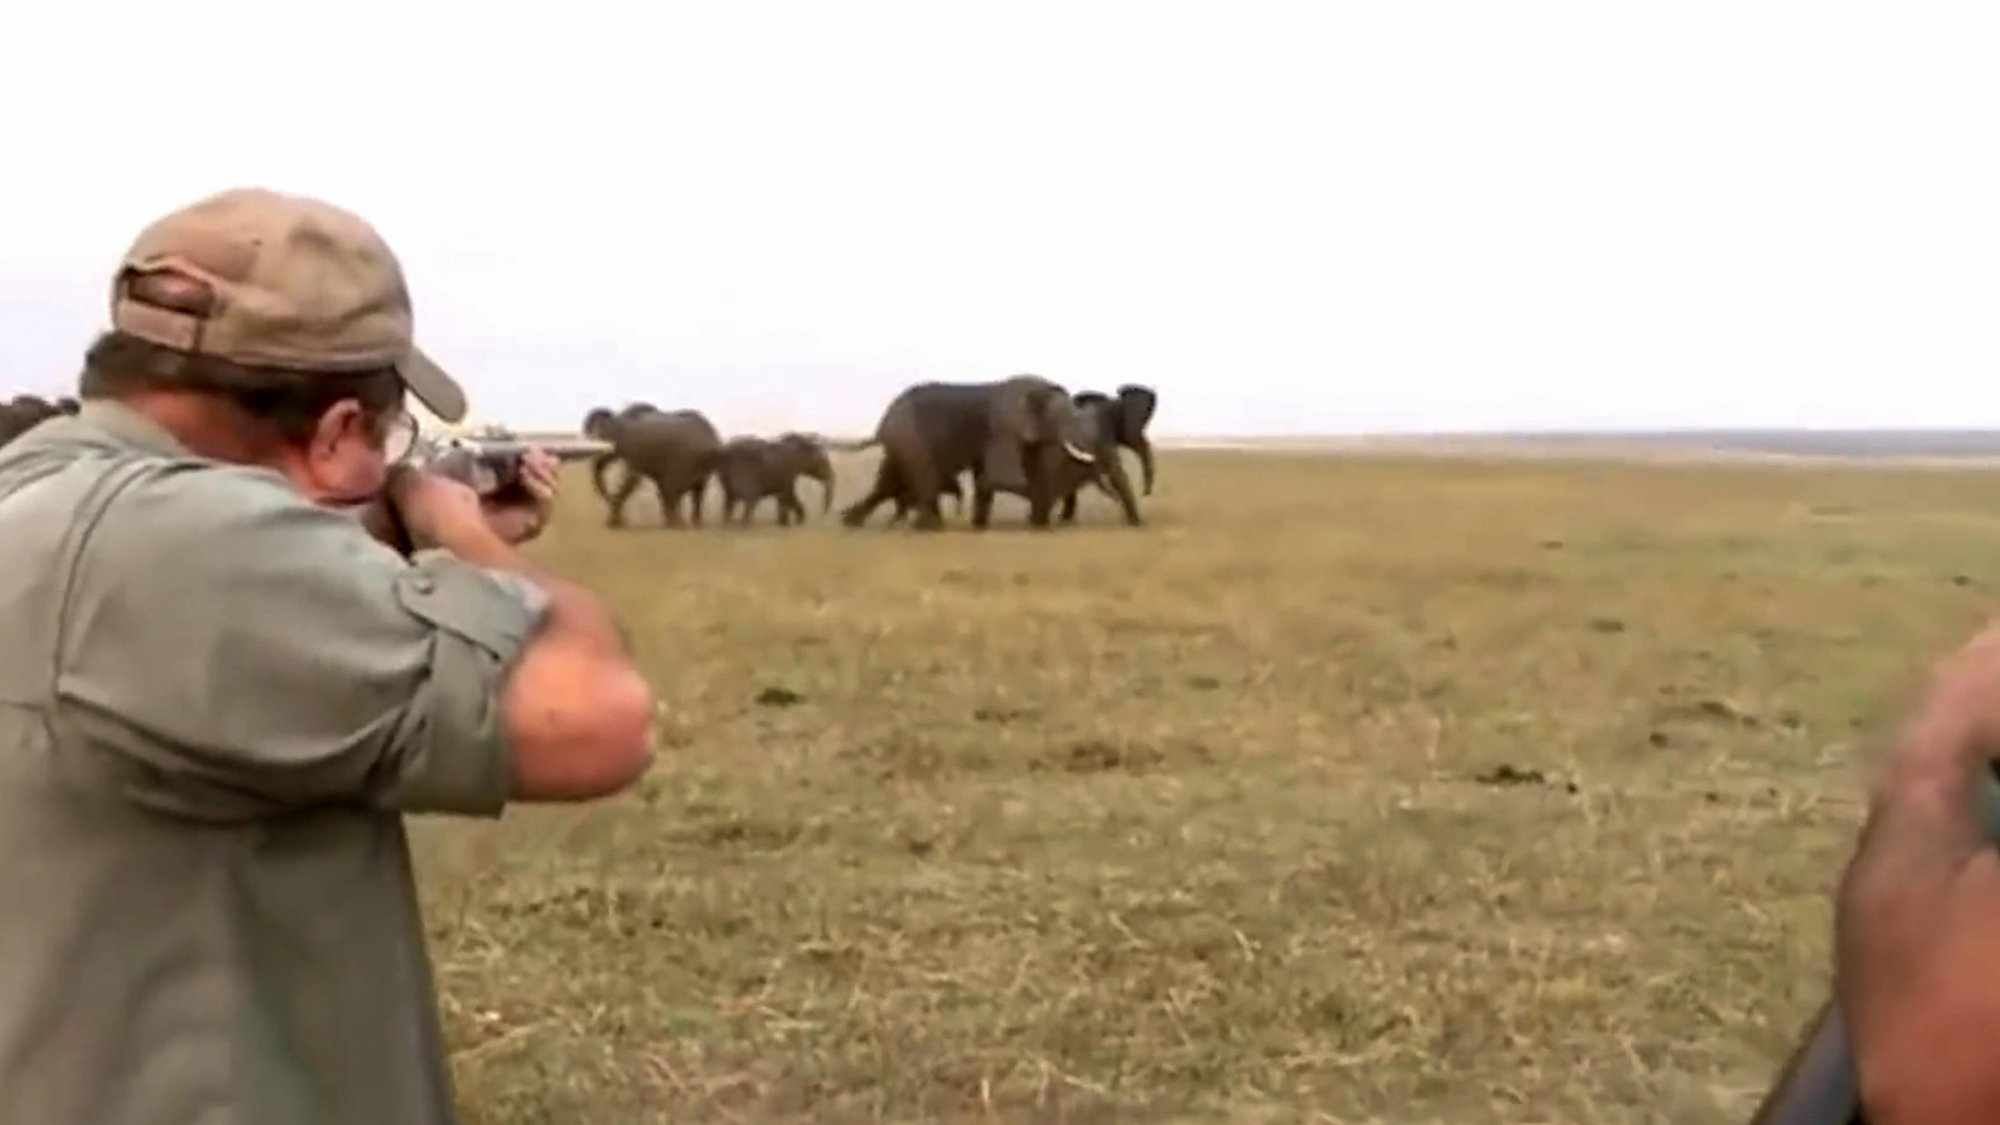 """Pic Shows: The hunters shooting at the elephant; This is the moment angry elephants charge two hunters in South Africa after they shoot a member of the herd. The dramatic video that shows the hunters shouting as they run for their lives was shot in the Nakabolelwa Conservancy, in North-eastern Namibia's Zambezi region. The footage starts with two men aiming at elephants some distance away, and one of them can be heard saying: """"Hit between the eyes."""" Both men then shoot at a large elephant identified as a male bull elephant. The wounded animal then runs some distance from the herd before eventually collapsing, prompting the rest of the herd to start bellowing and charging at the hunters. The footage was reportedly shot over three years ago according to Namibia-based big-game hunter Corne Kruger, who said he was surprised that it had now gone viral online. He said that he employed 12 people to organise hunting safaris which put valuable funds into the local communities as well as controlled big-game numbers. He said that the video showed the perfectly legal and licensed shooting of an elephant and added: """"I don't know why it only surfaced now."""" He said that he hunted no more than """"two elephants a year"""" in line with the quota that was made available to hunters. If the hunter is a foreign national, they need to be accompanied by a licensed local professional hunter."""